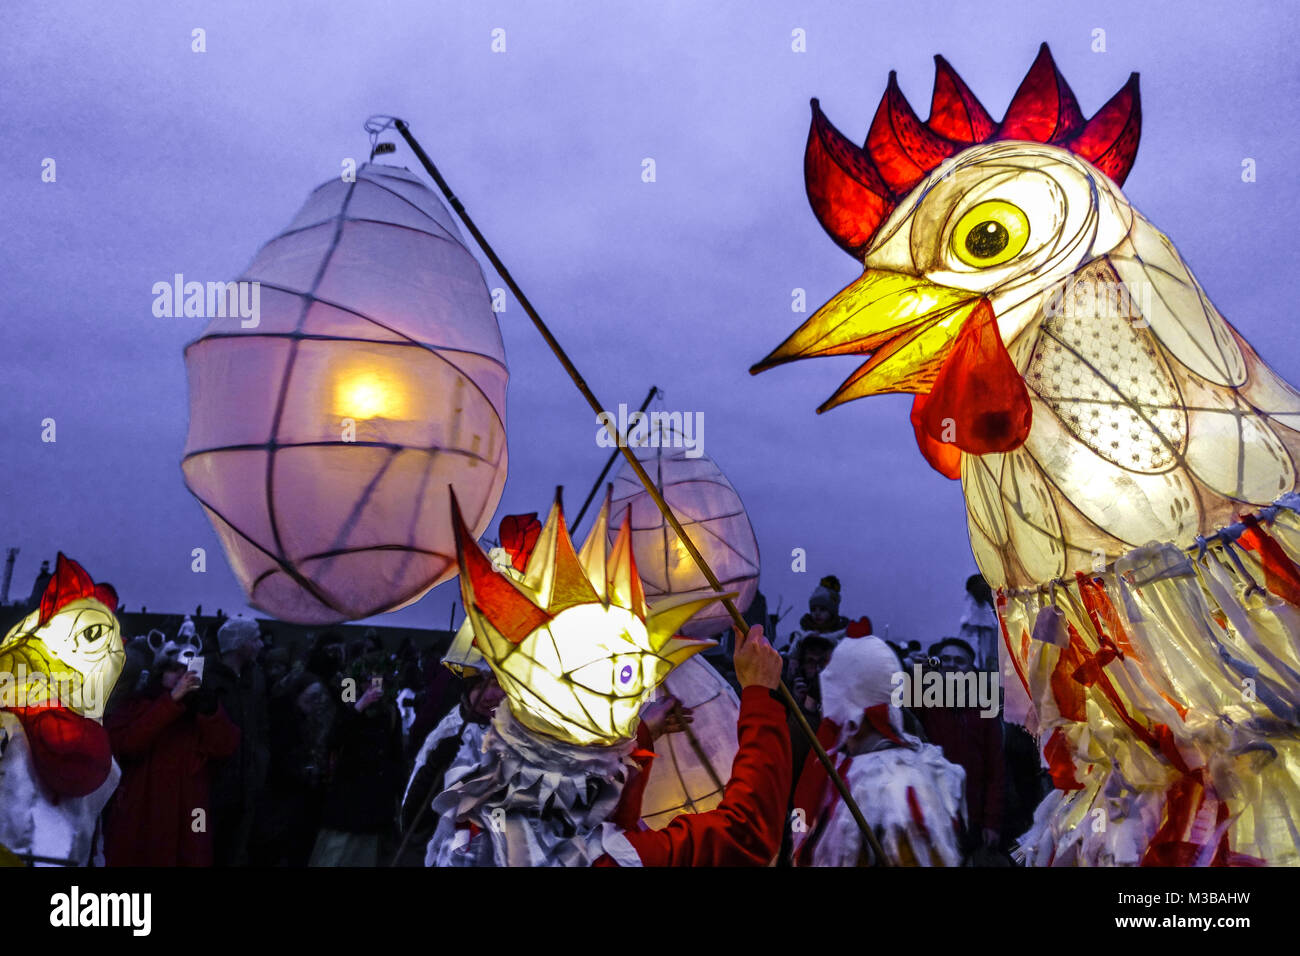 Roztoky near Prague, Czech Republic Carnival masks in a traditional parade, Chicken - Stock Image